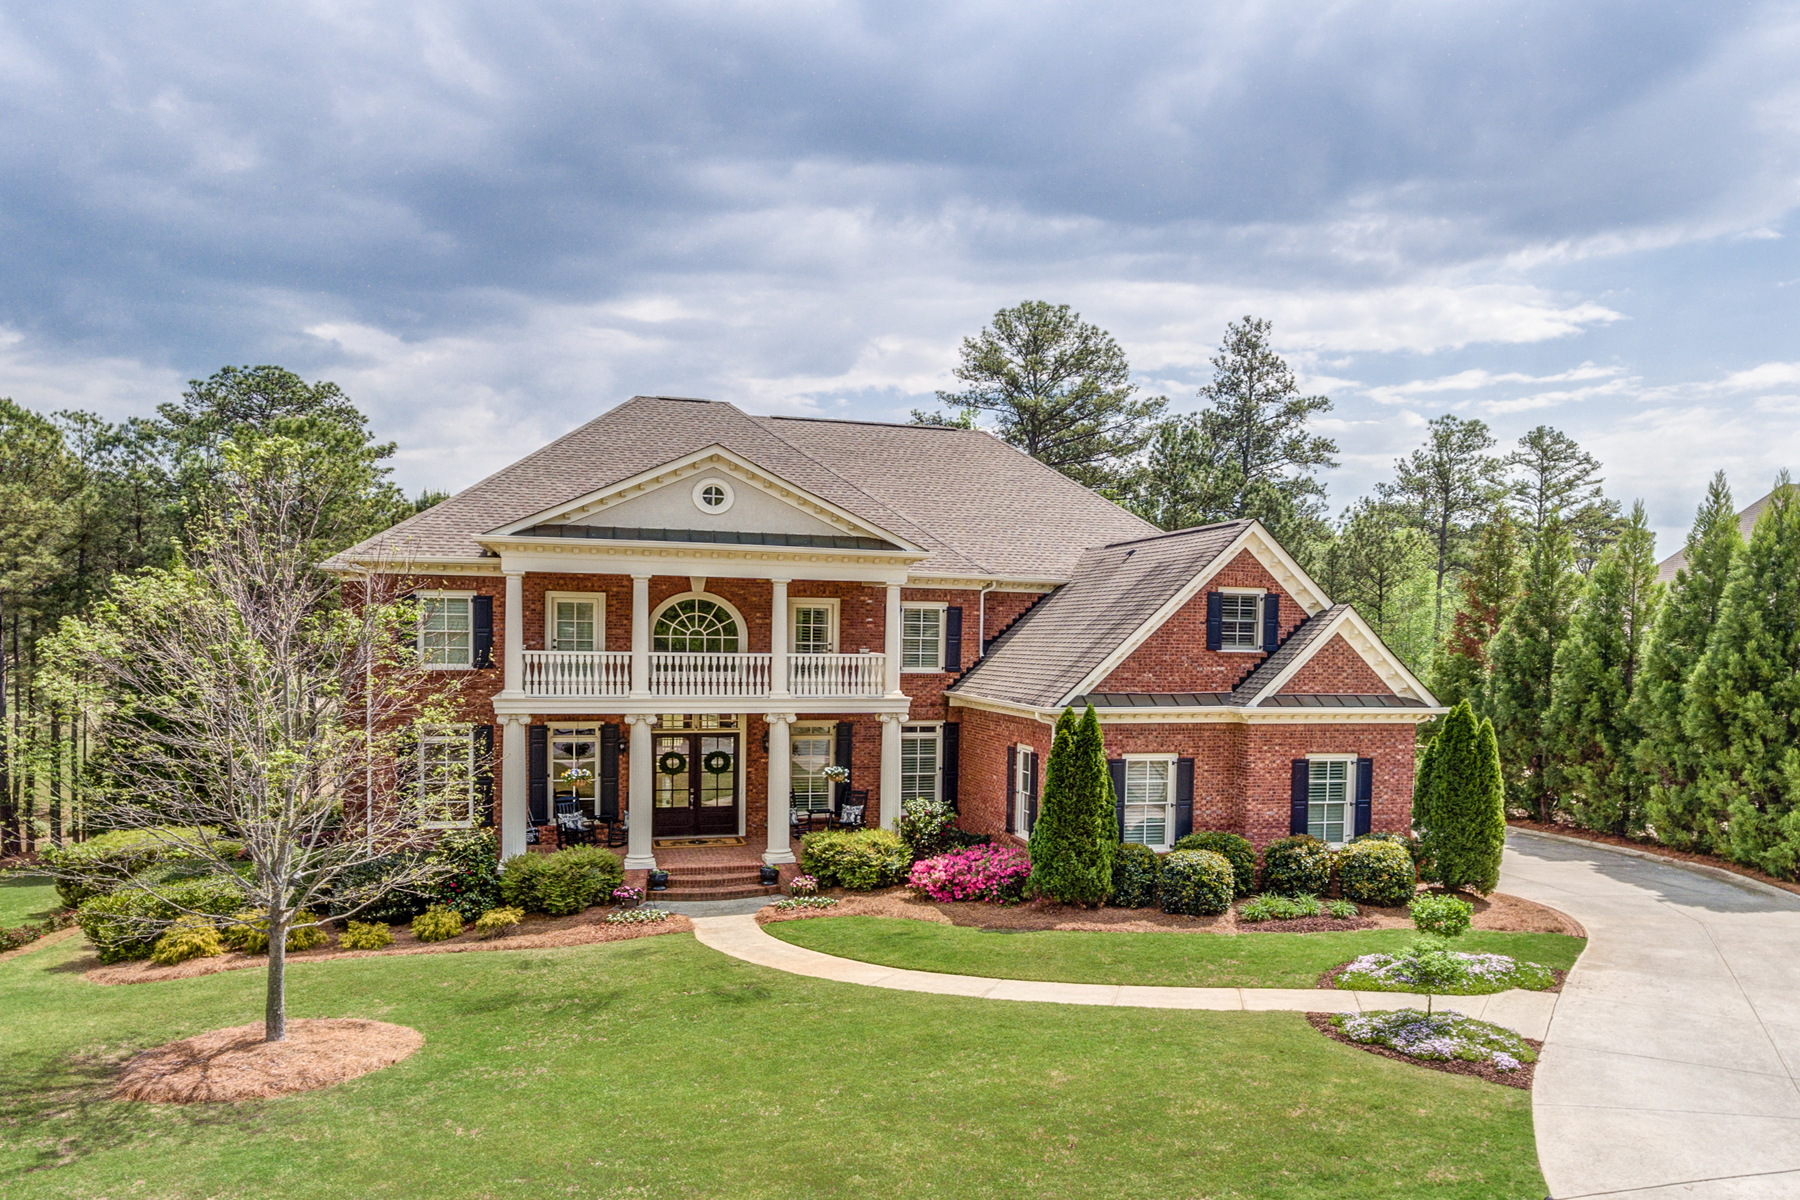 Moradia para Venda às Luxury Home In Gated Golf Community 4374 Oglethorpe Loop NW Acworth, Geórgia 30101 Estados Unidos